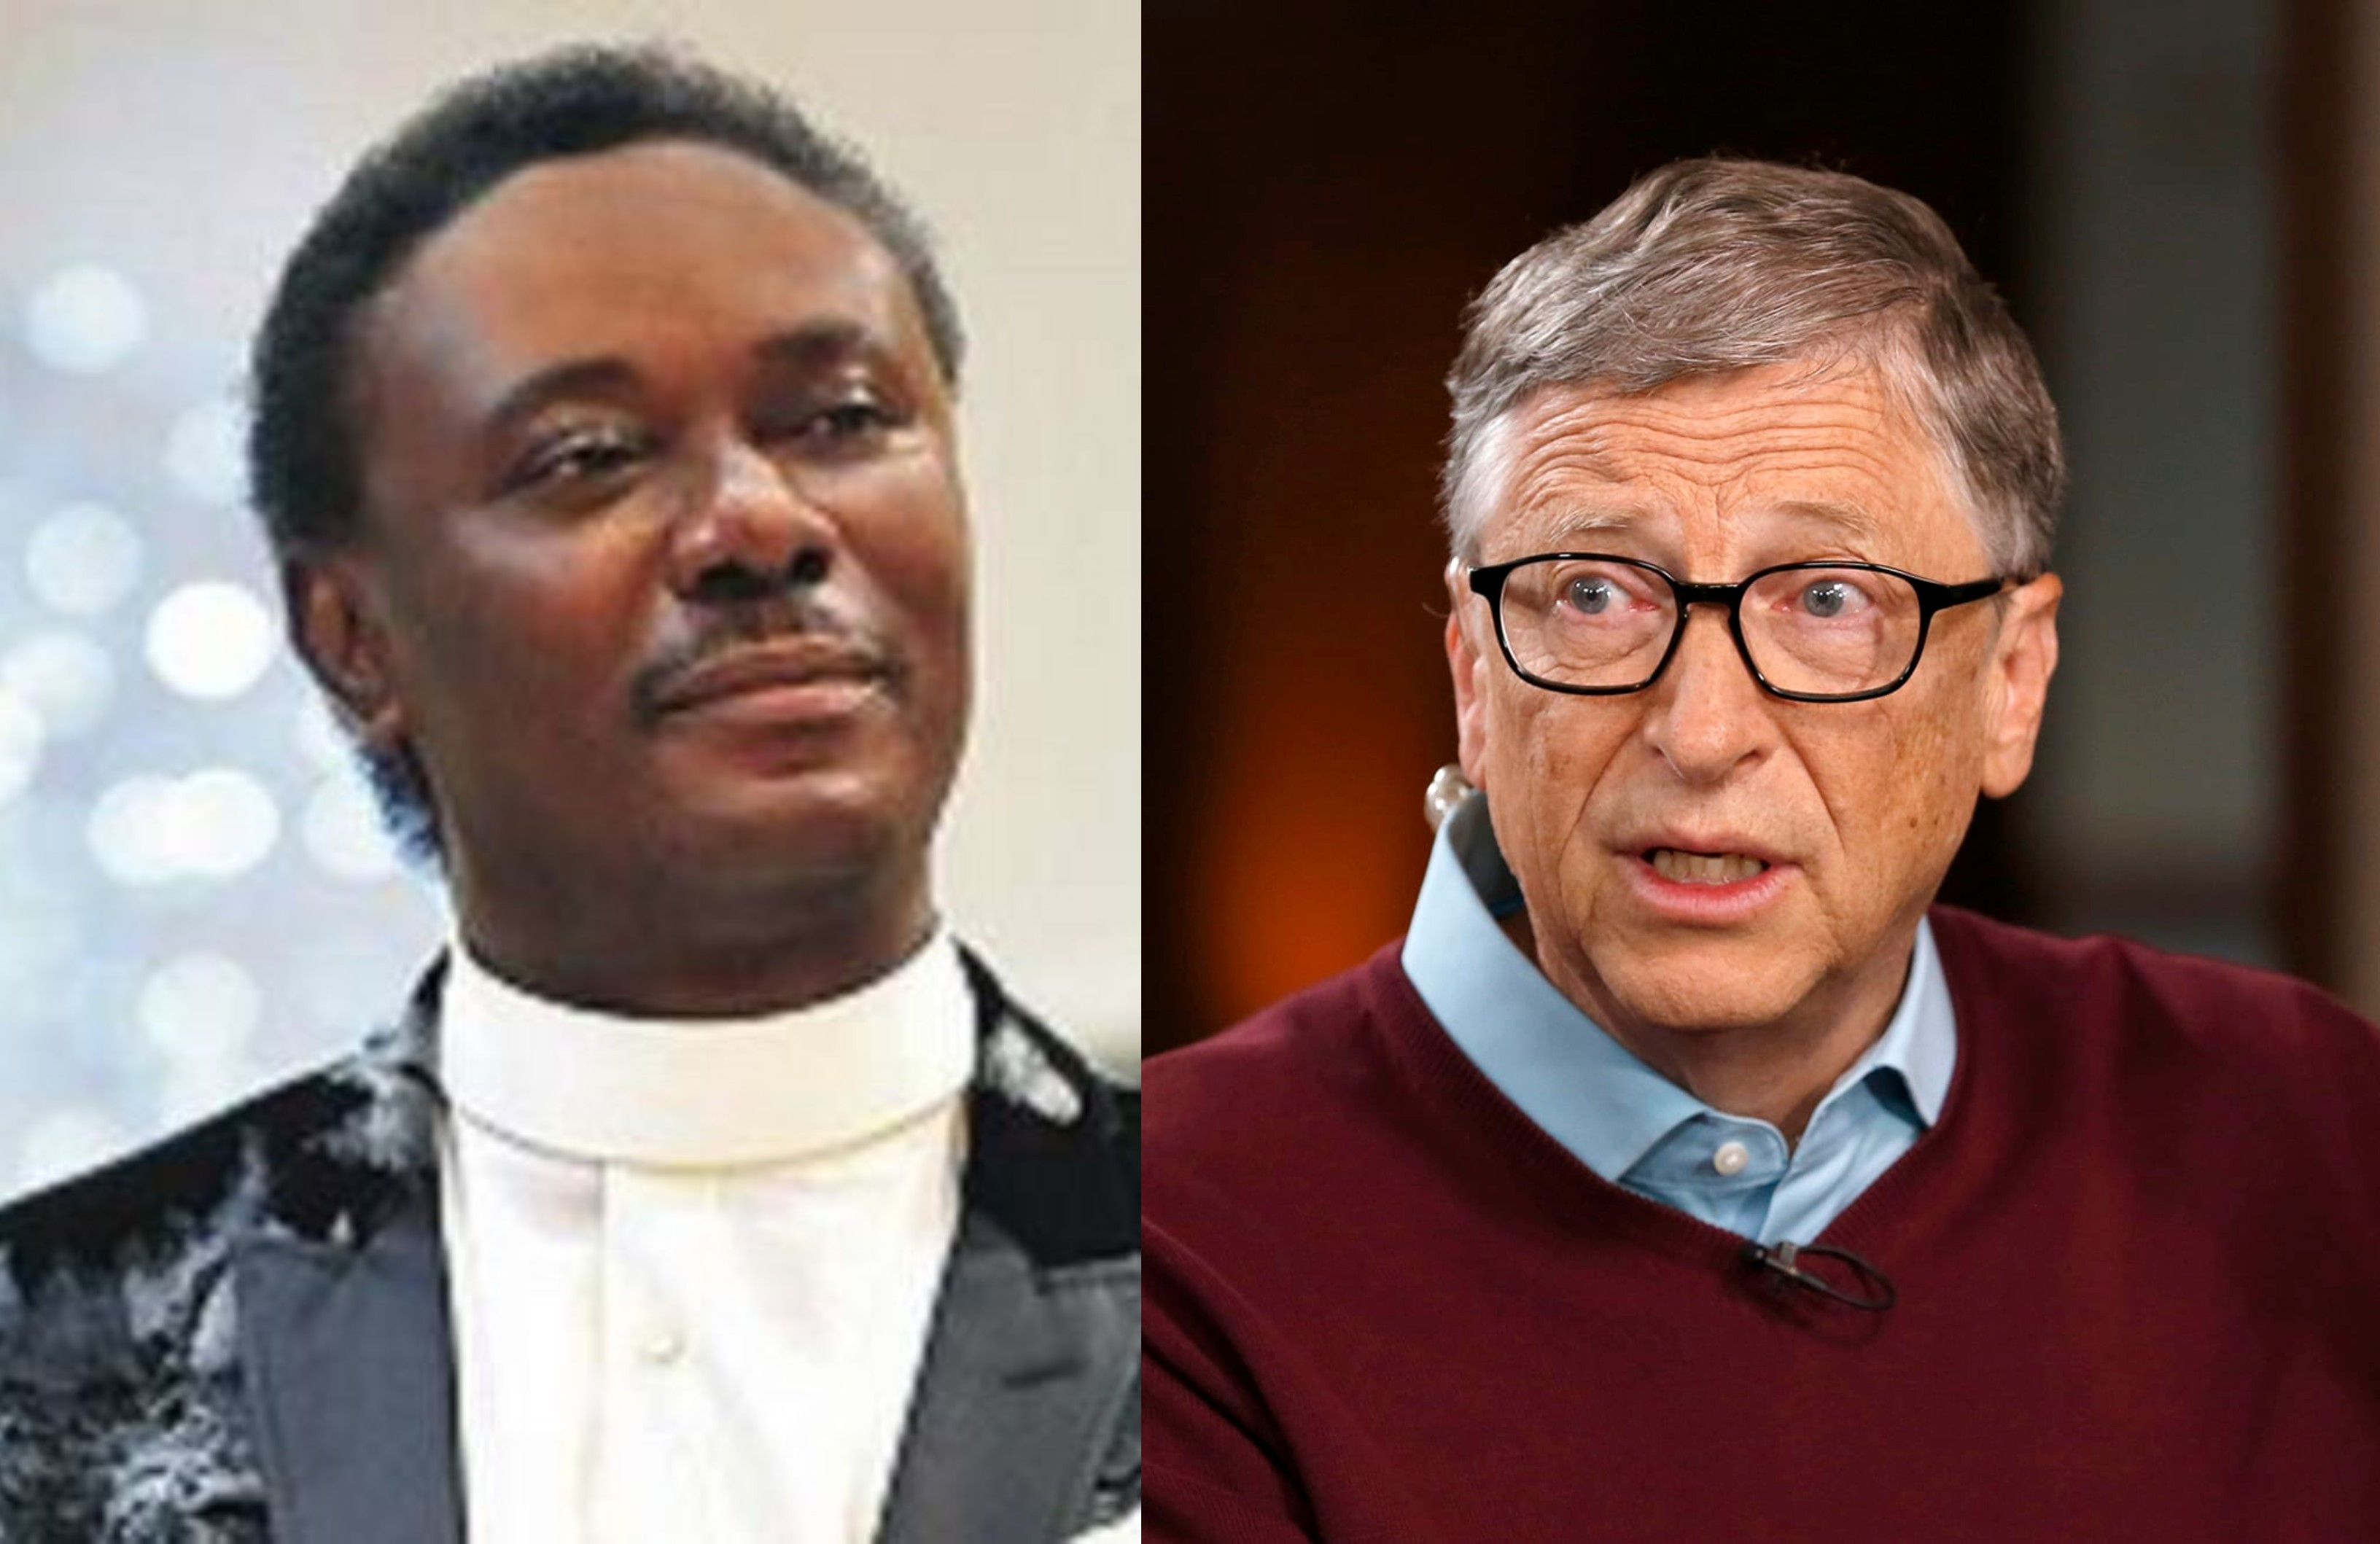 Bill Gates is leading an agenda to destabilize the world and execute a satanic agenda against the church - Rev. Chris Okotie